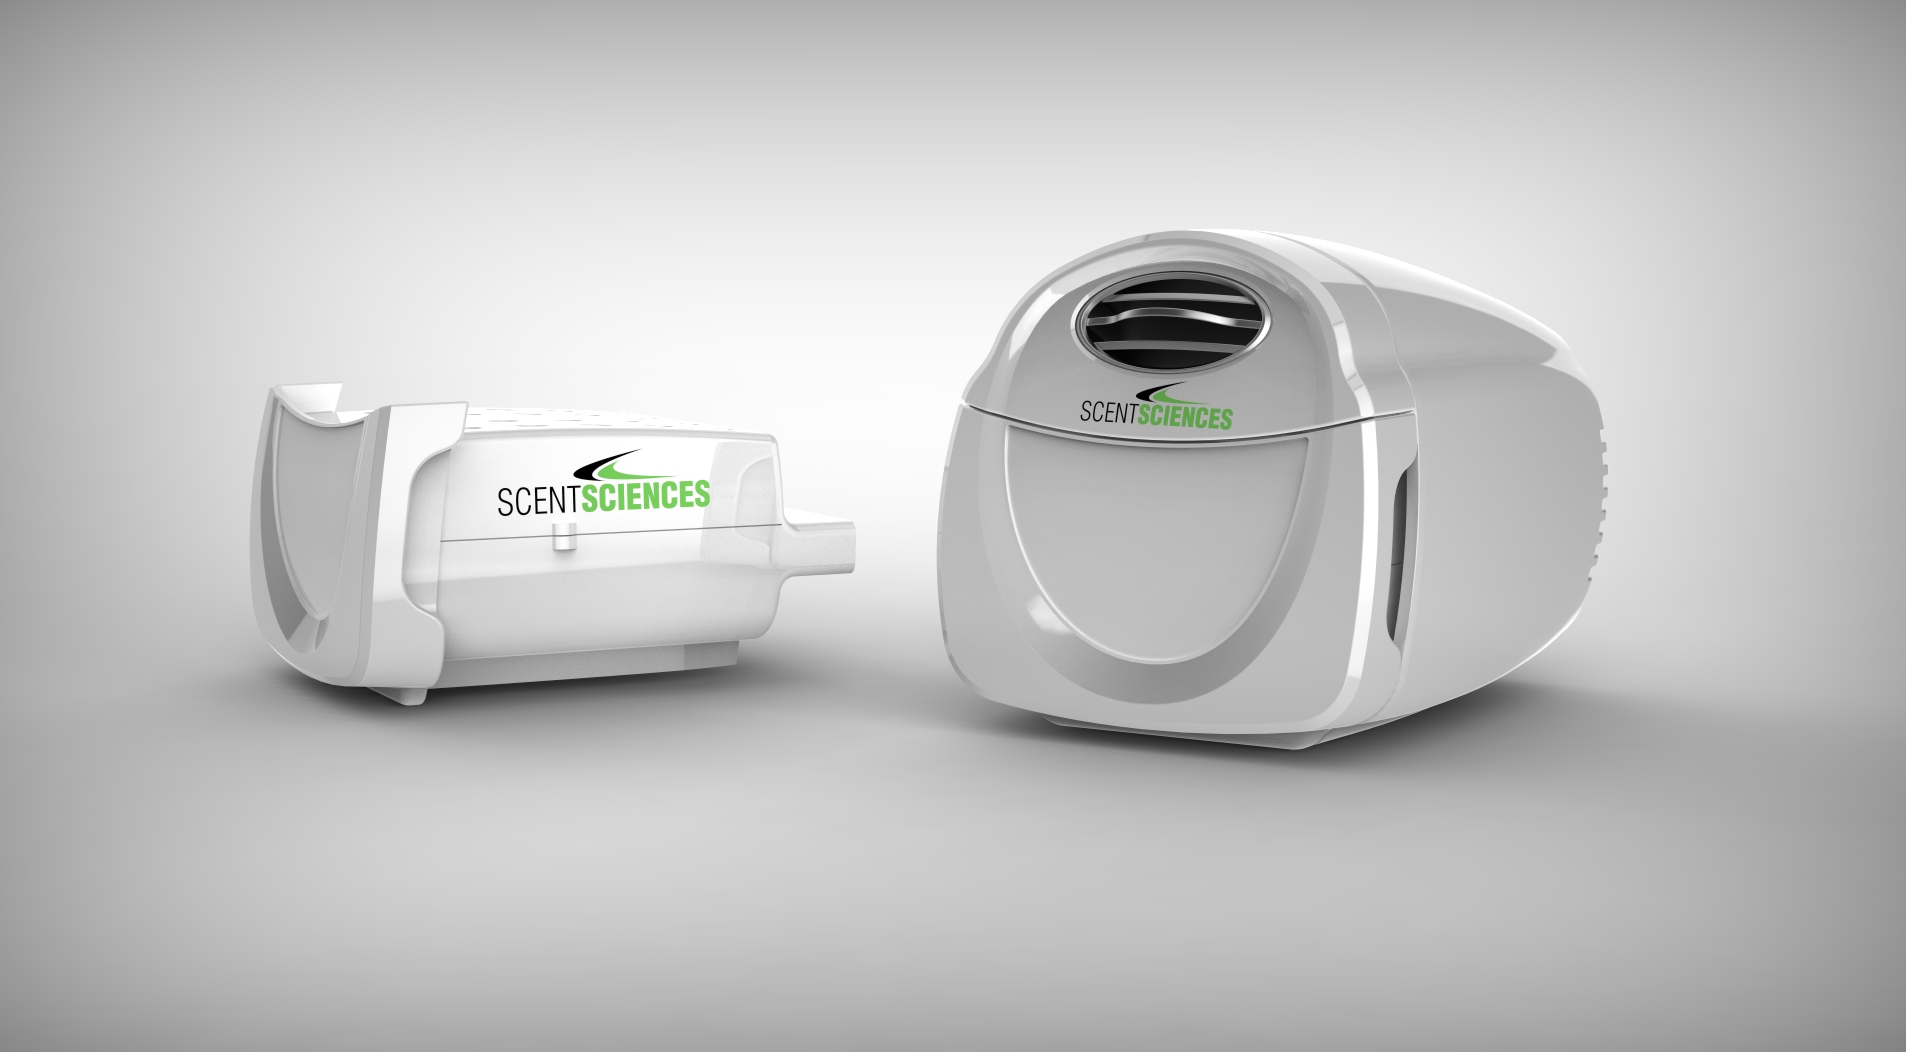 This is a photo of Scent Science Corporation's product, ScentScape, which digitally emits scents.